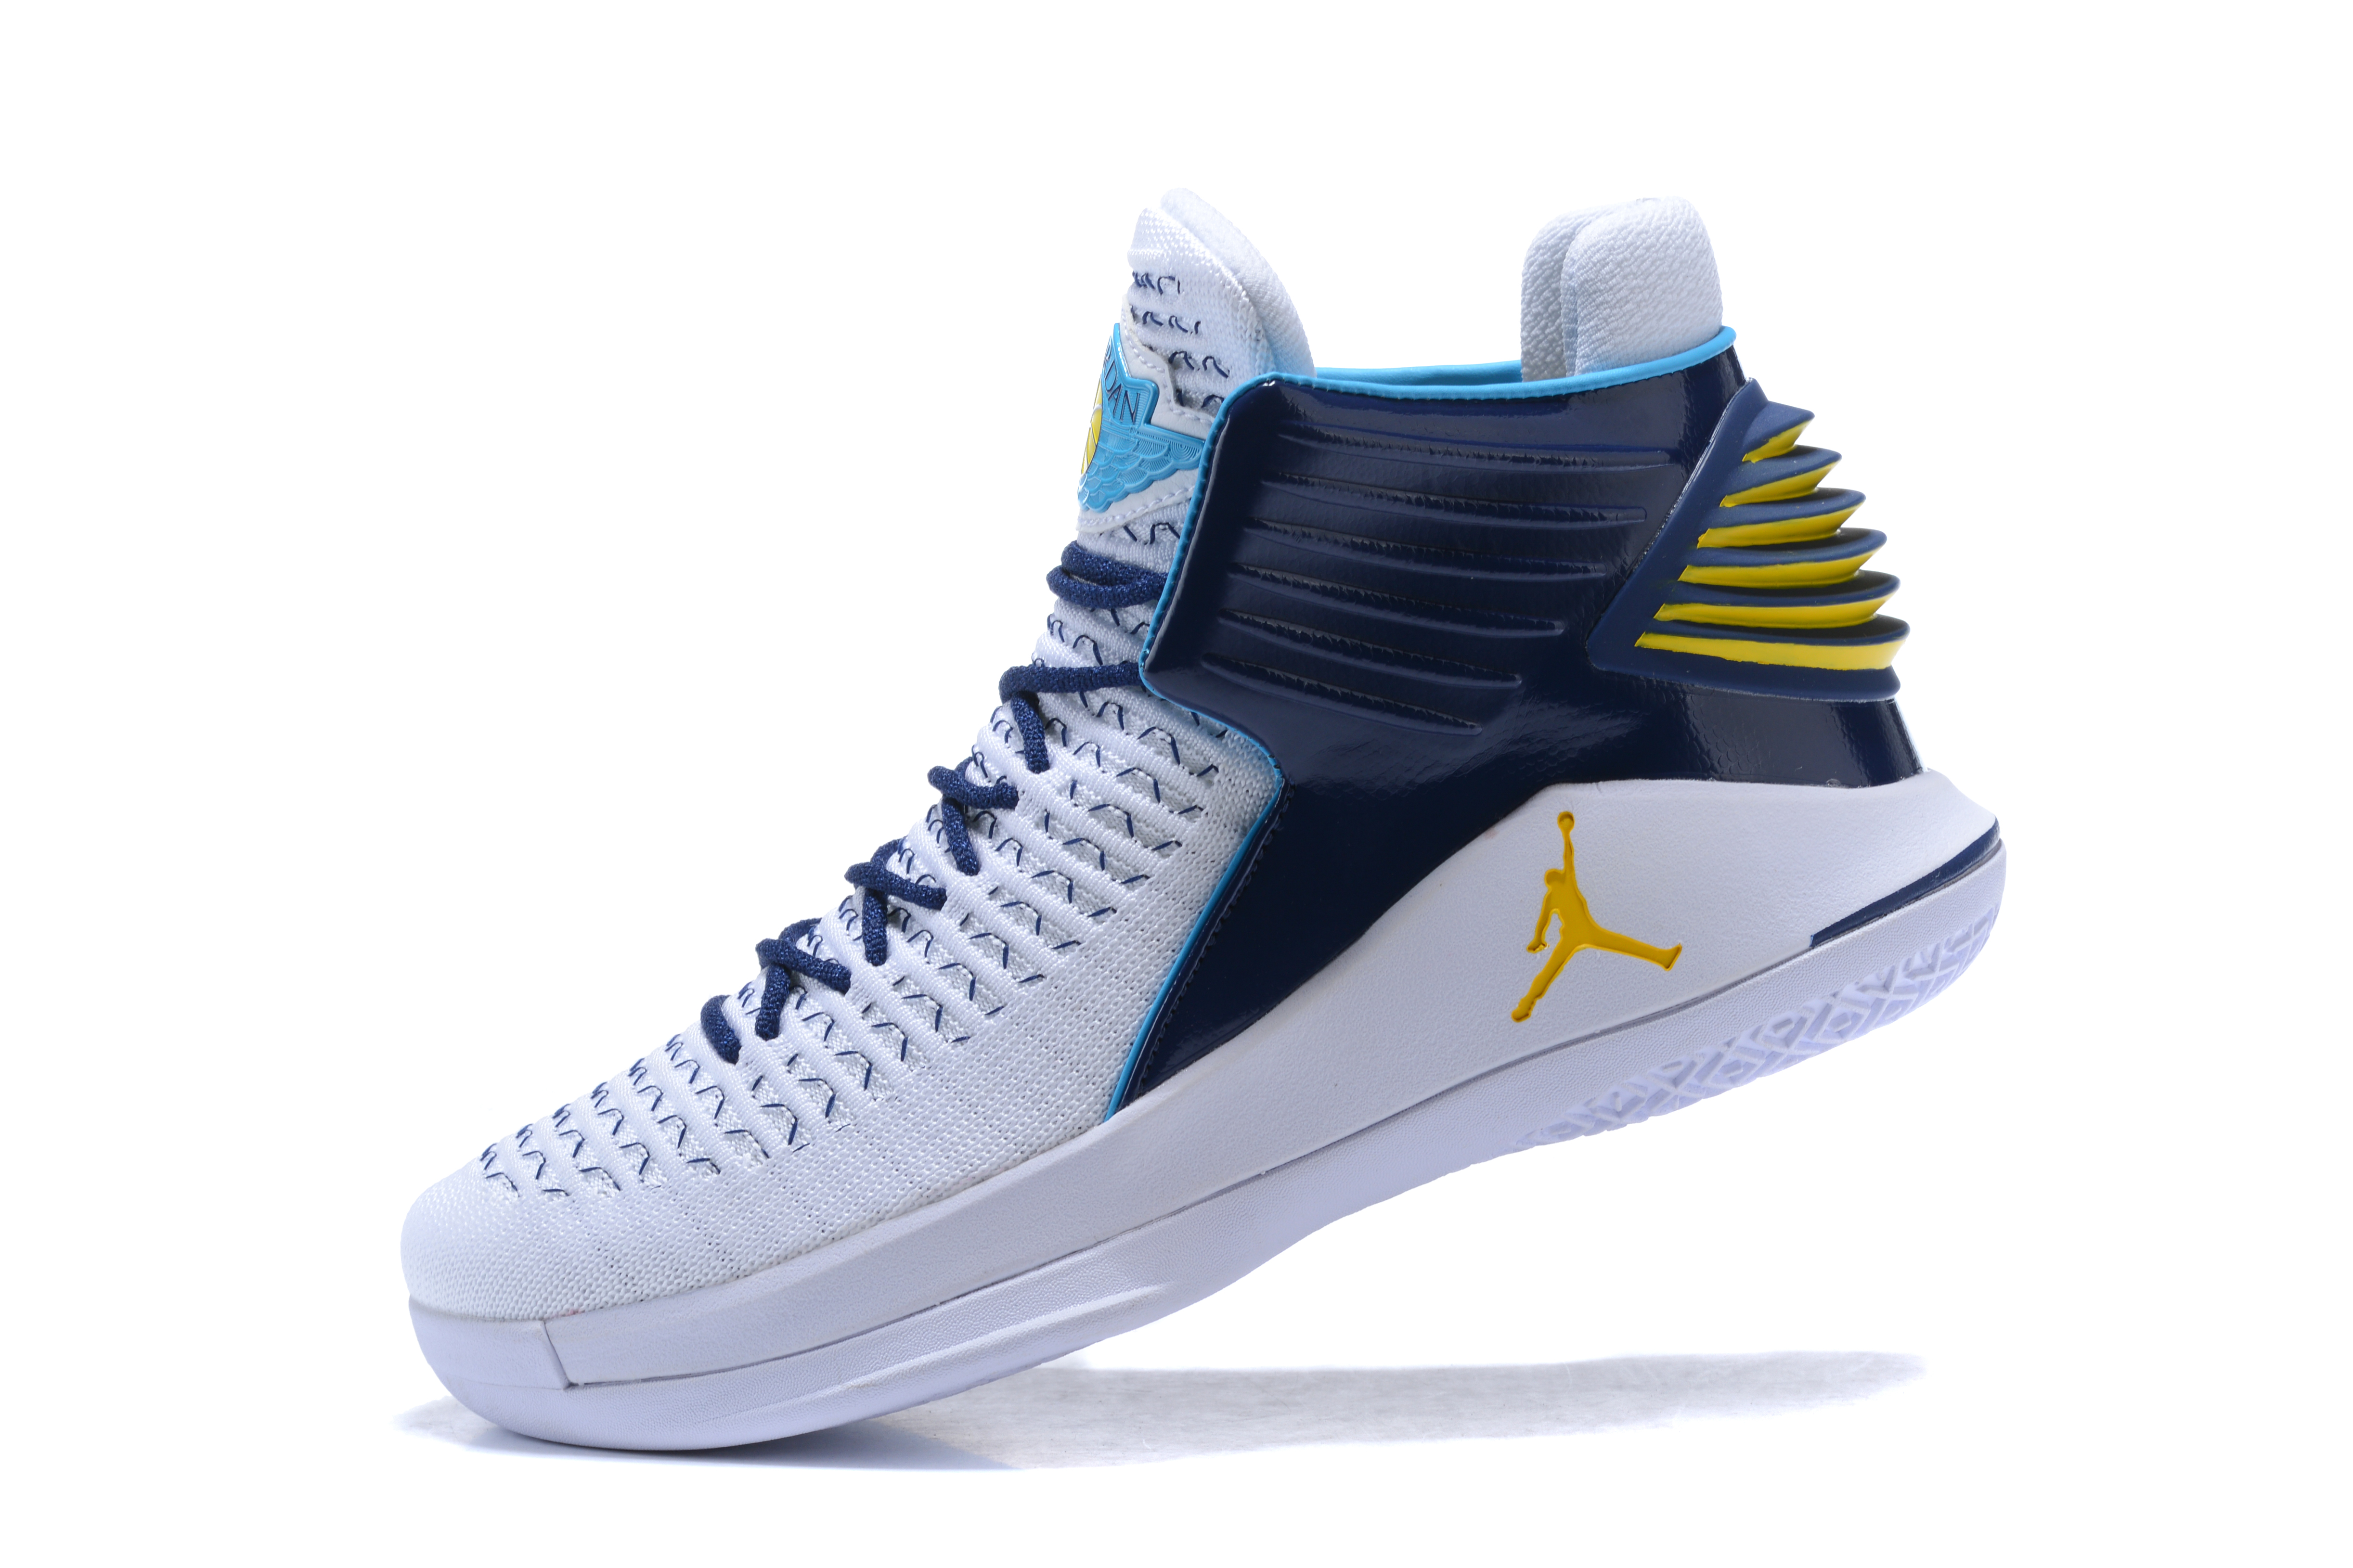 2017 Jordan 32 High White Blue Yellow